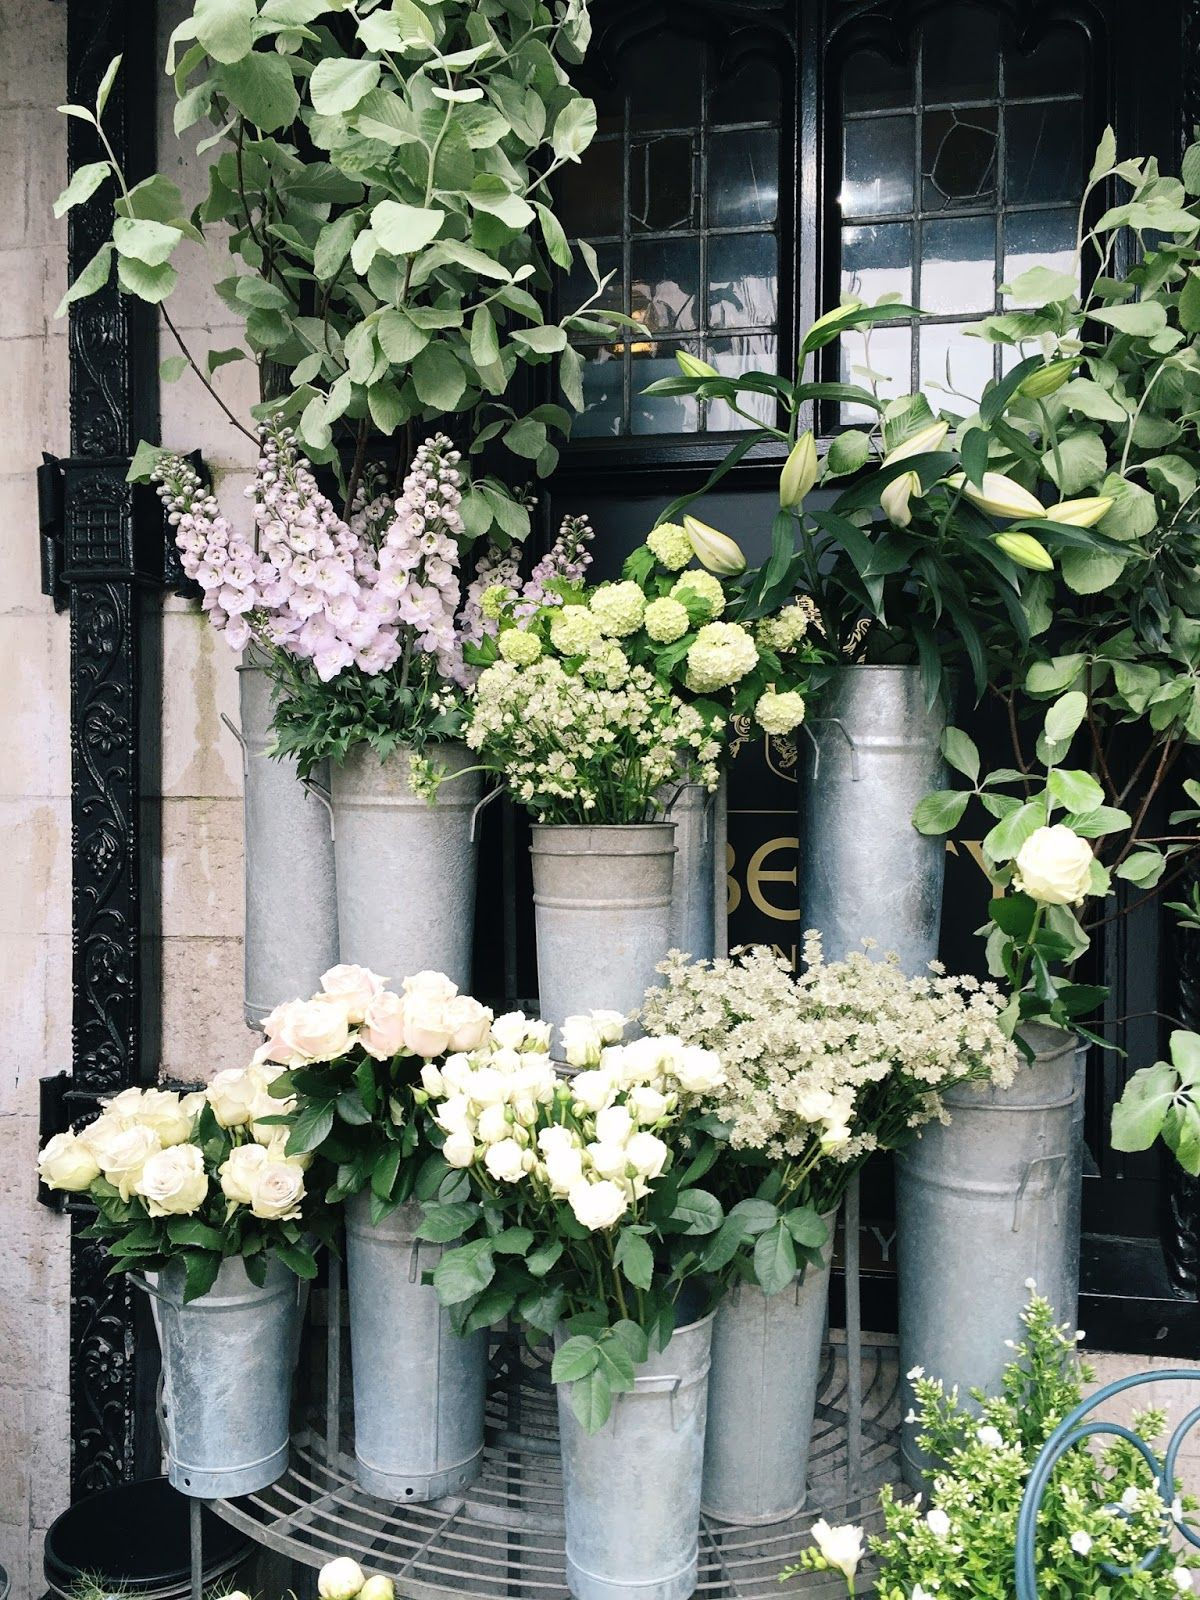 Hello everyone! It is written in stone for me, that if I visit central London, I go to admire the flowers outside Liberty. I know this is a sight that…